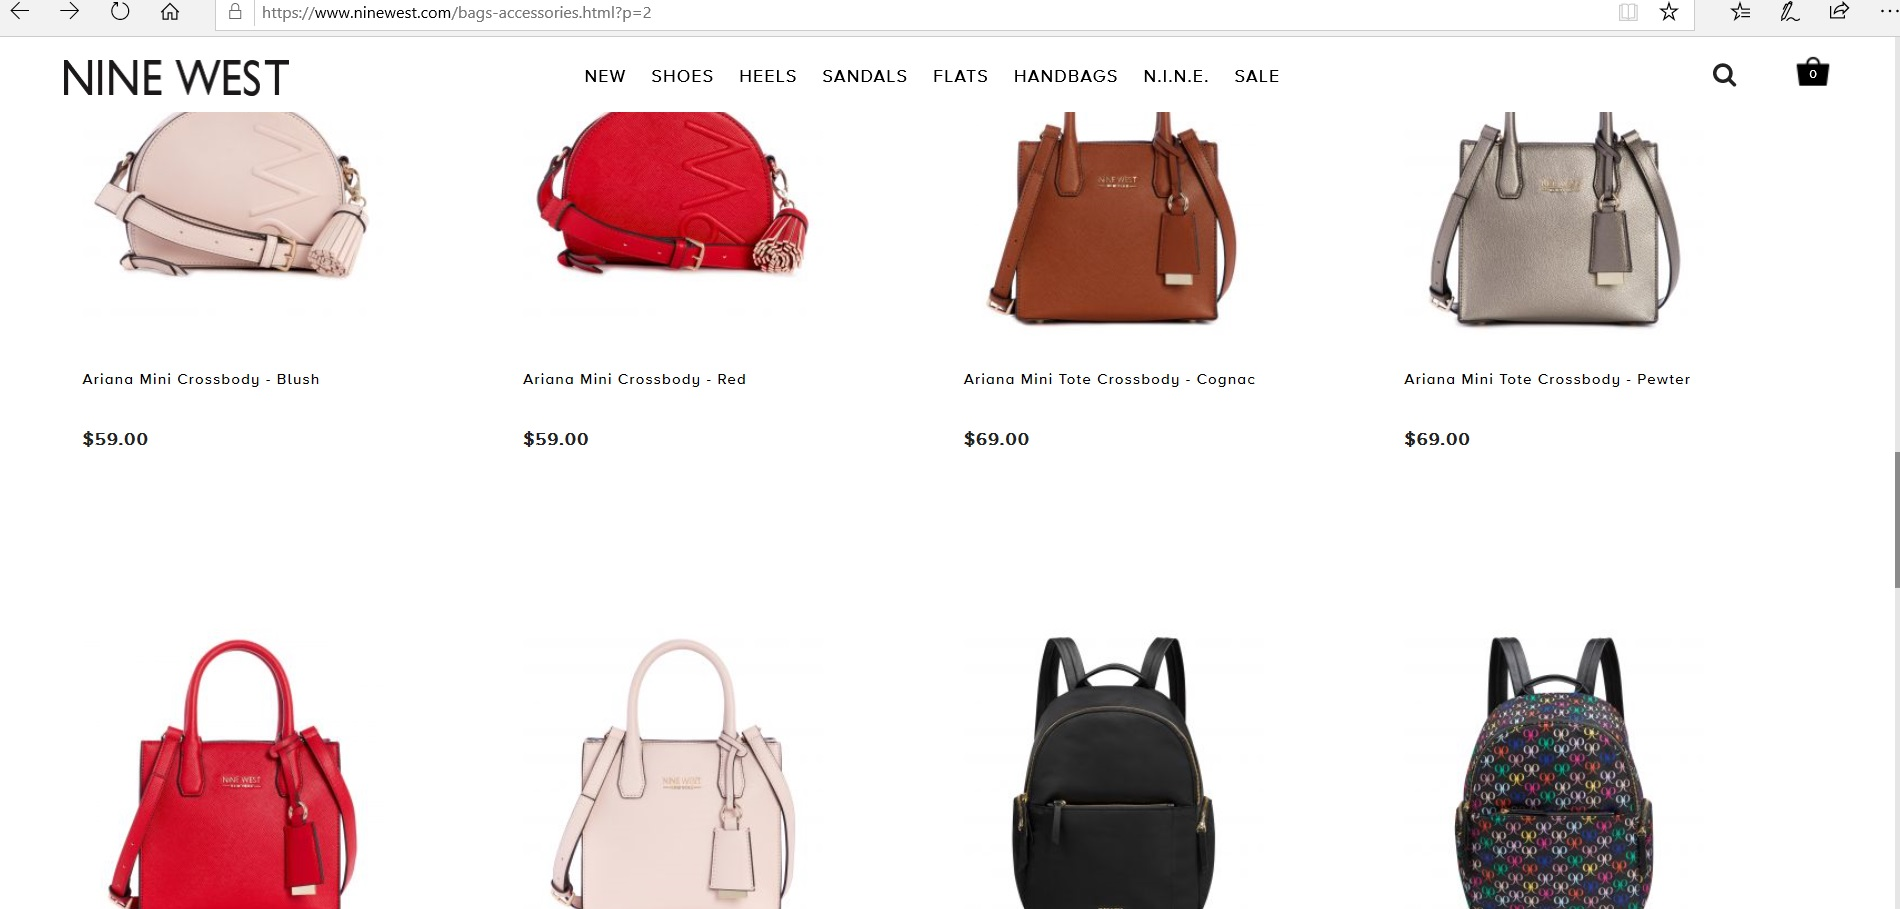 Nine West online catalogue for women s bags and accessories.